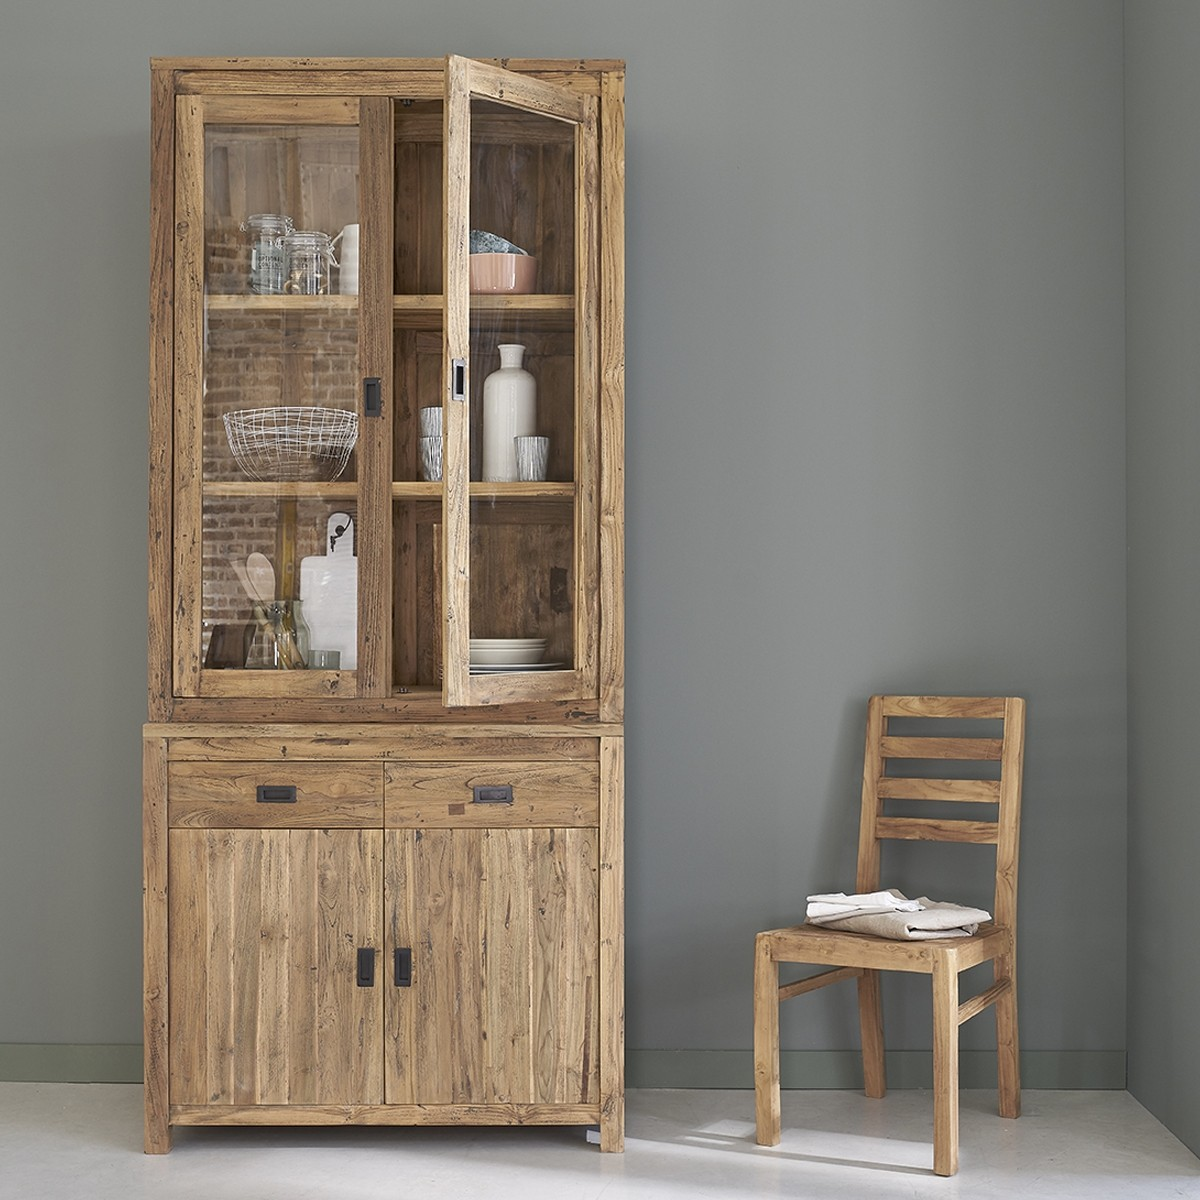 vaisselier en bois de teck recycl 100 cargo bois dessus. Black Bedroom Furniture Sets. Home Design Ideas